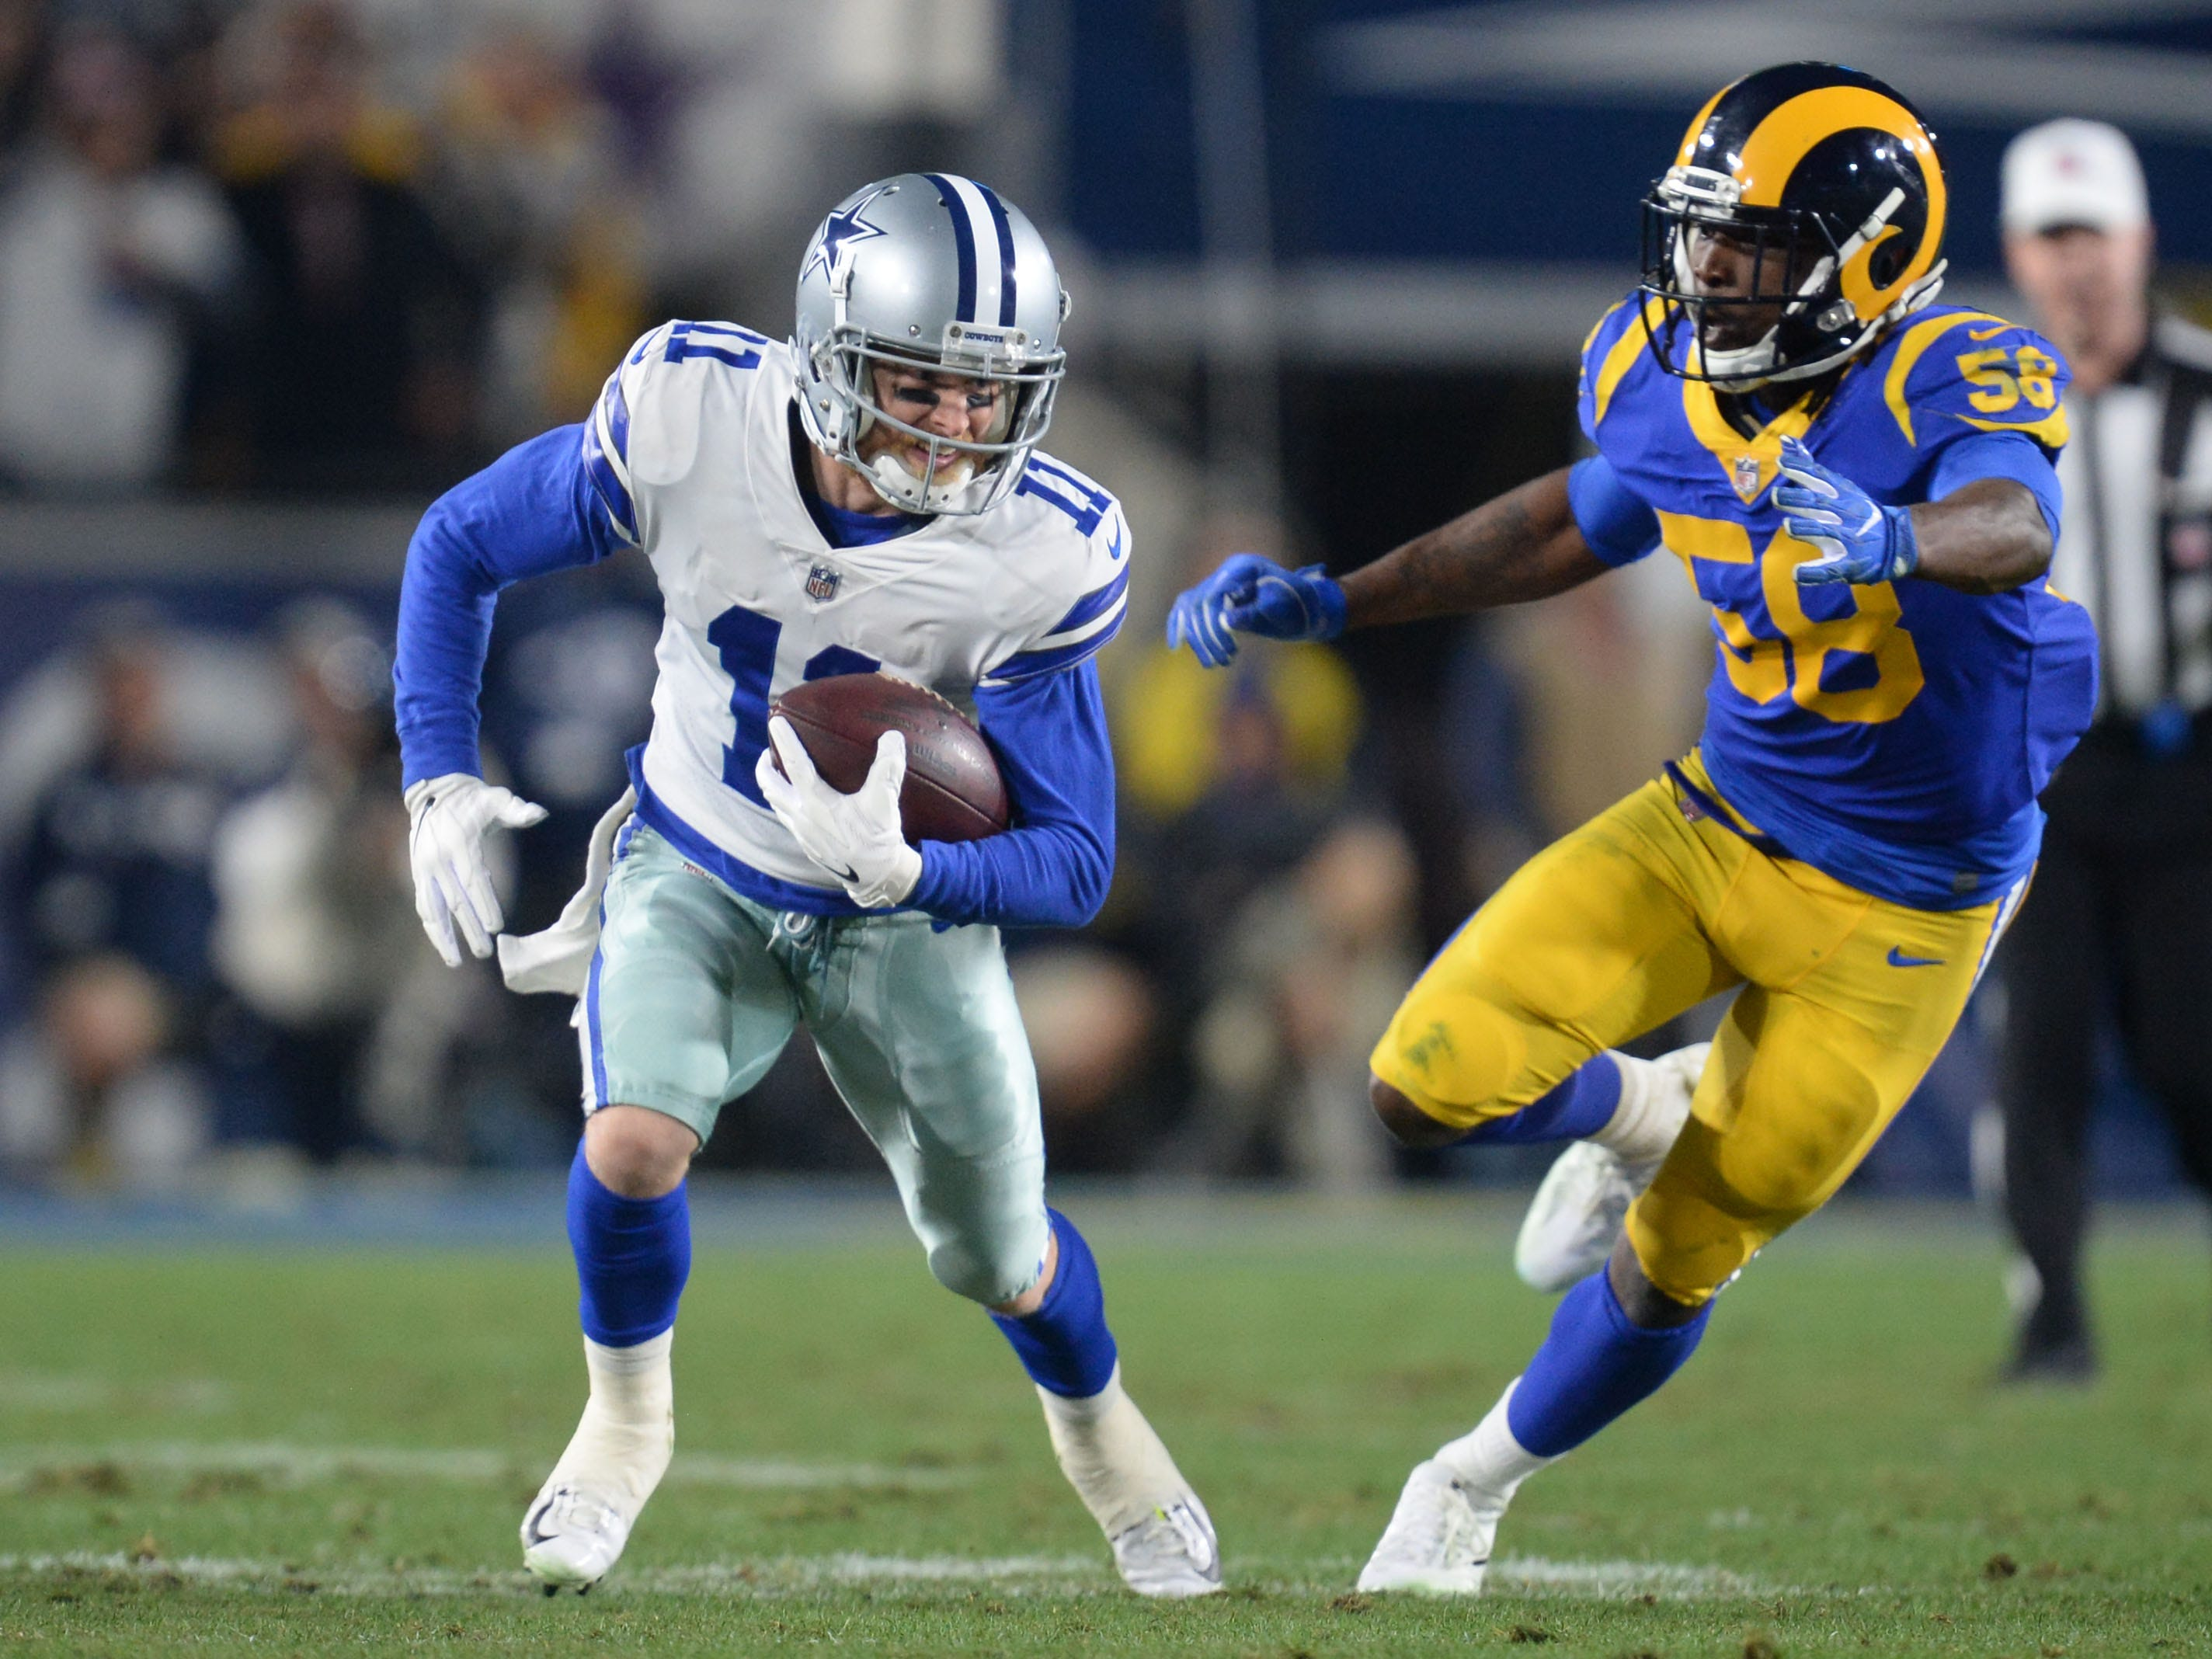 NR: Cole Beasley, WR, Cowboys: Agreed to deal with Bills